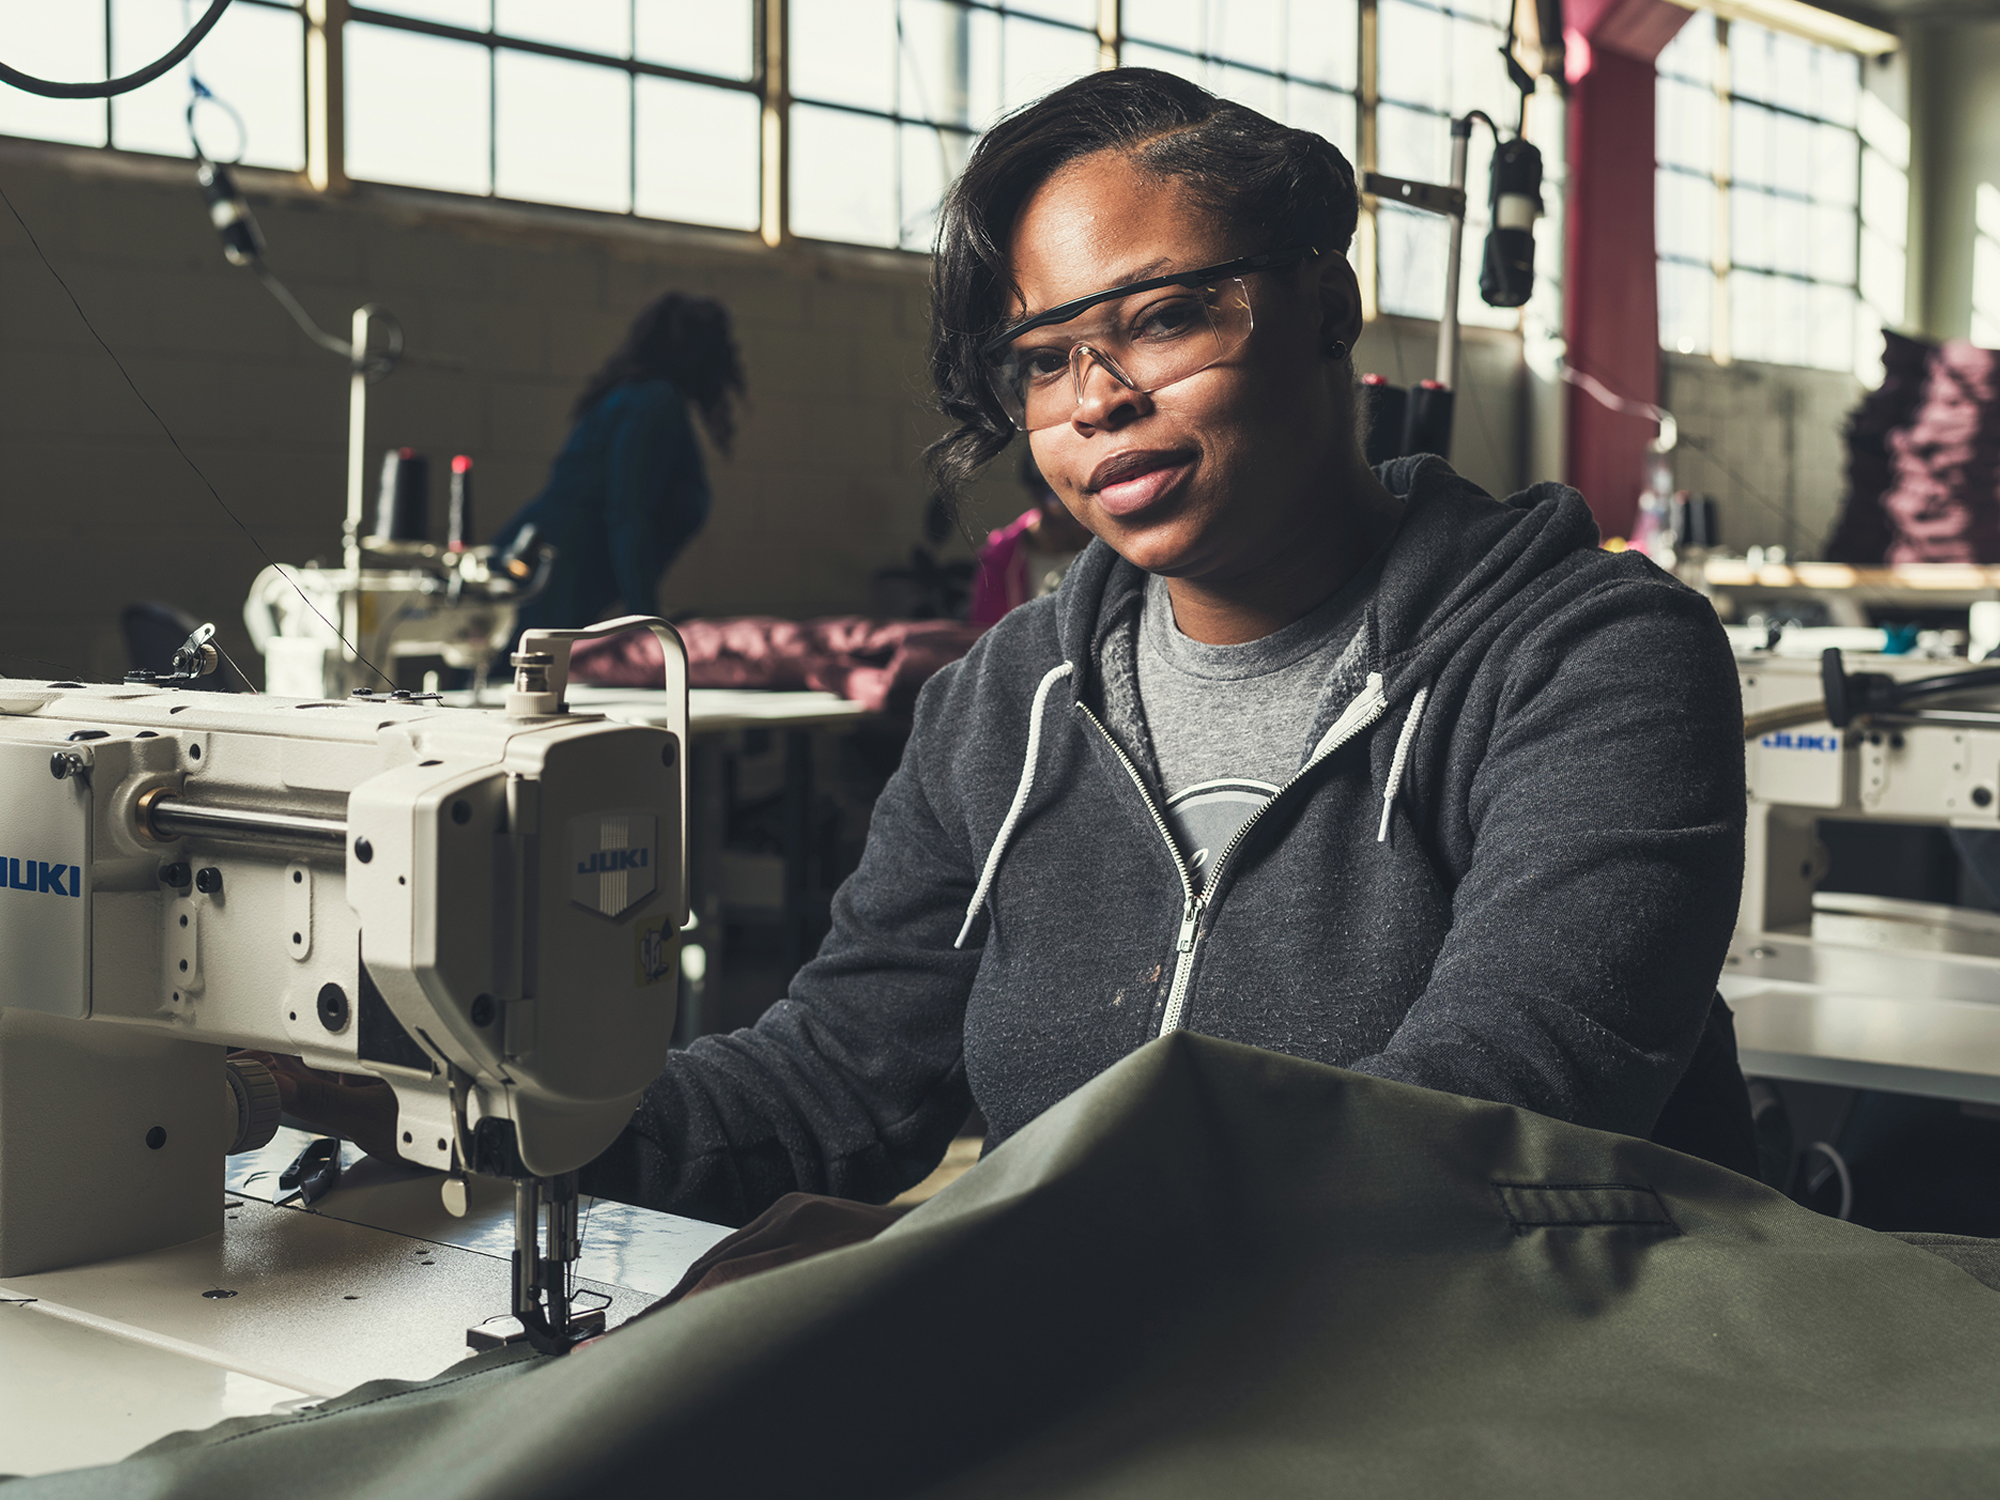 We provide employment and training to homeless parents who manufacture sleeping bag coats for those in need. -